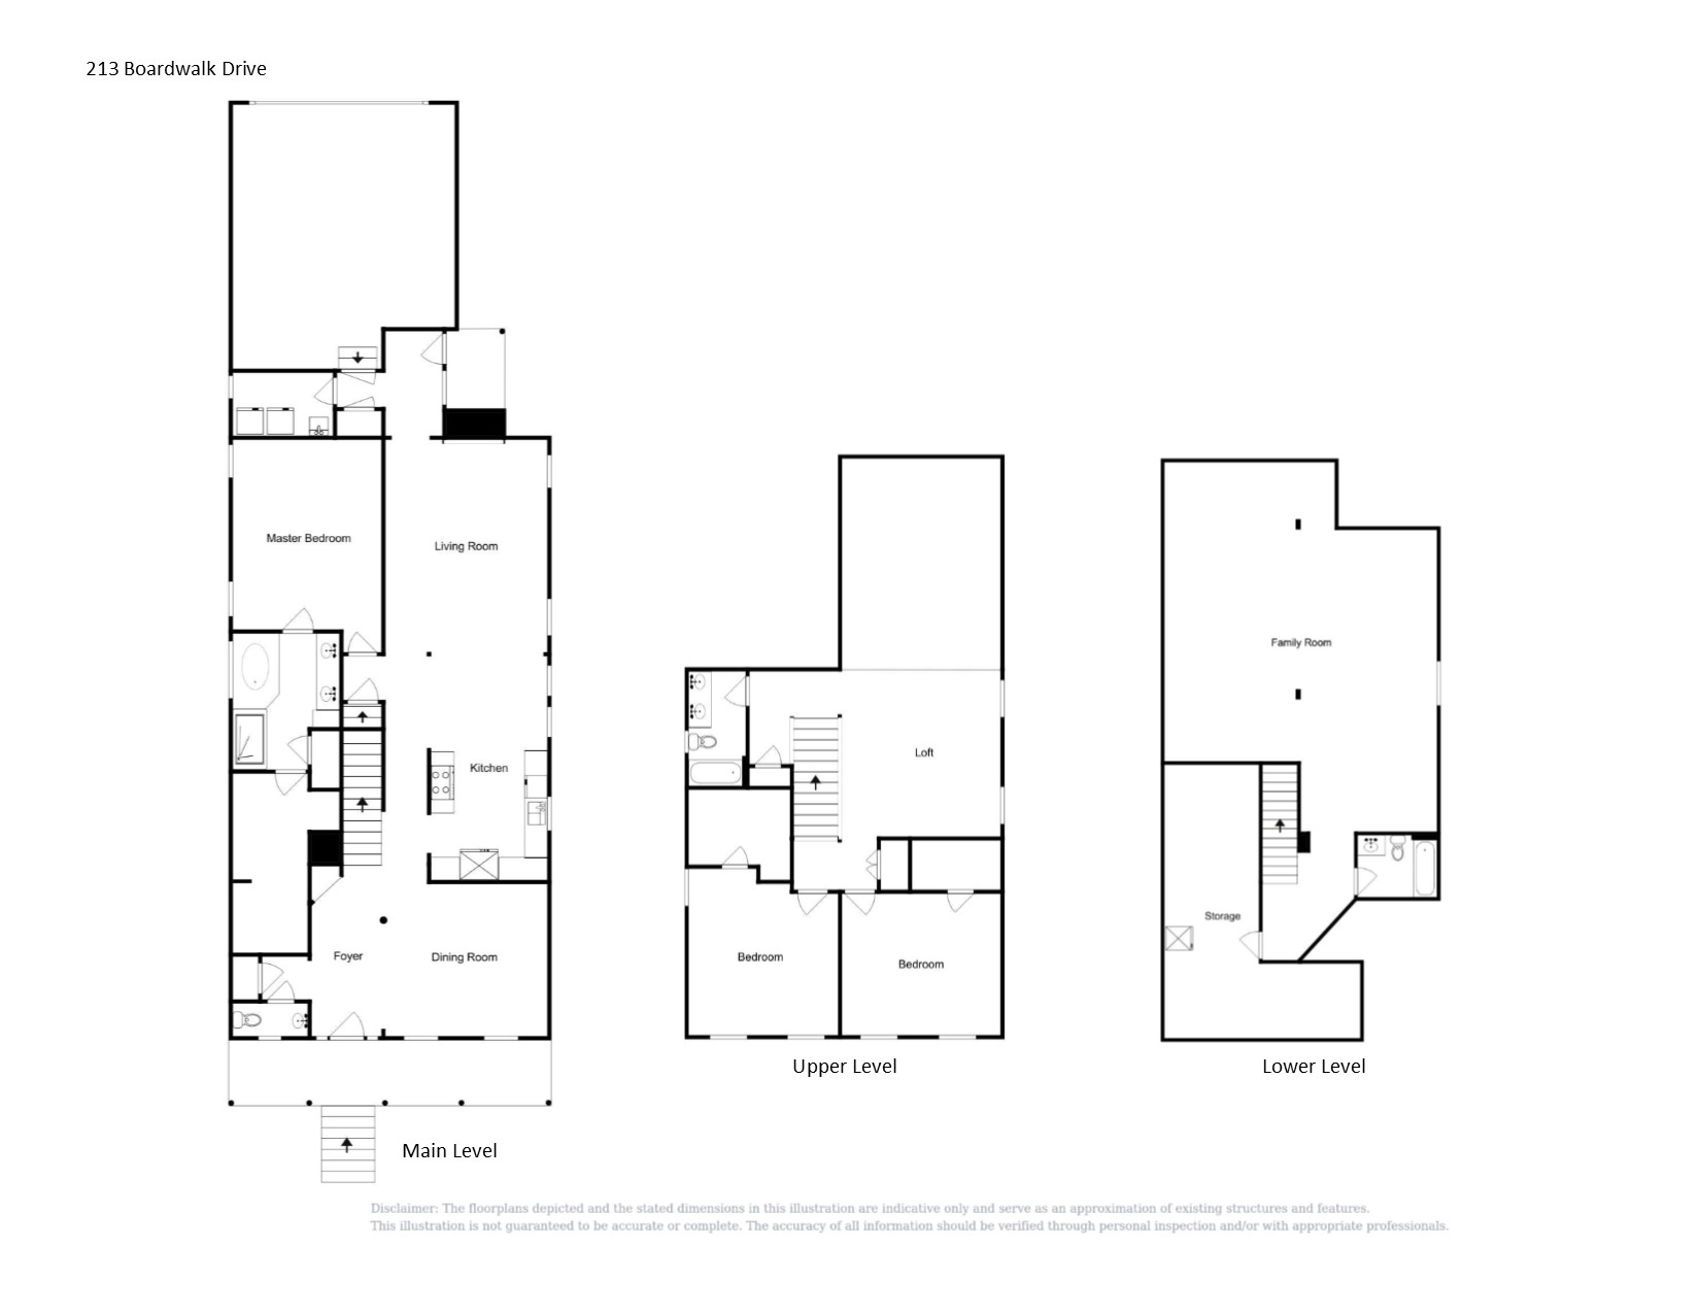 Boardwalkfloorplan.resize_1700x.jpg